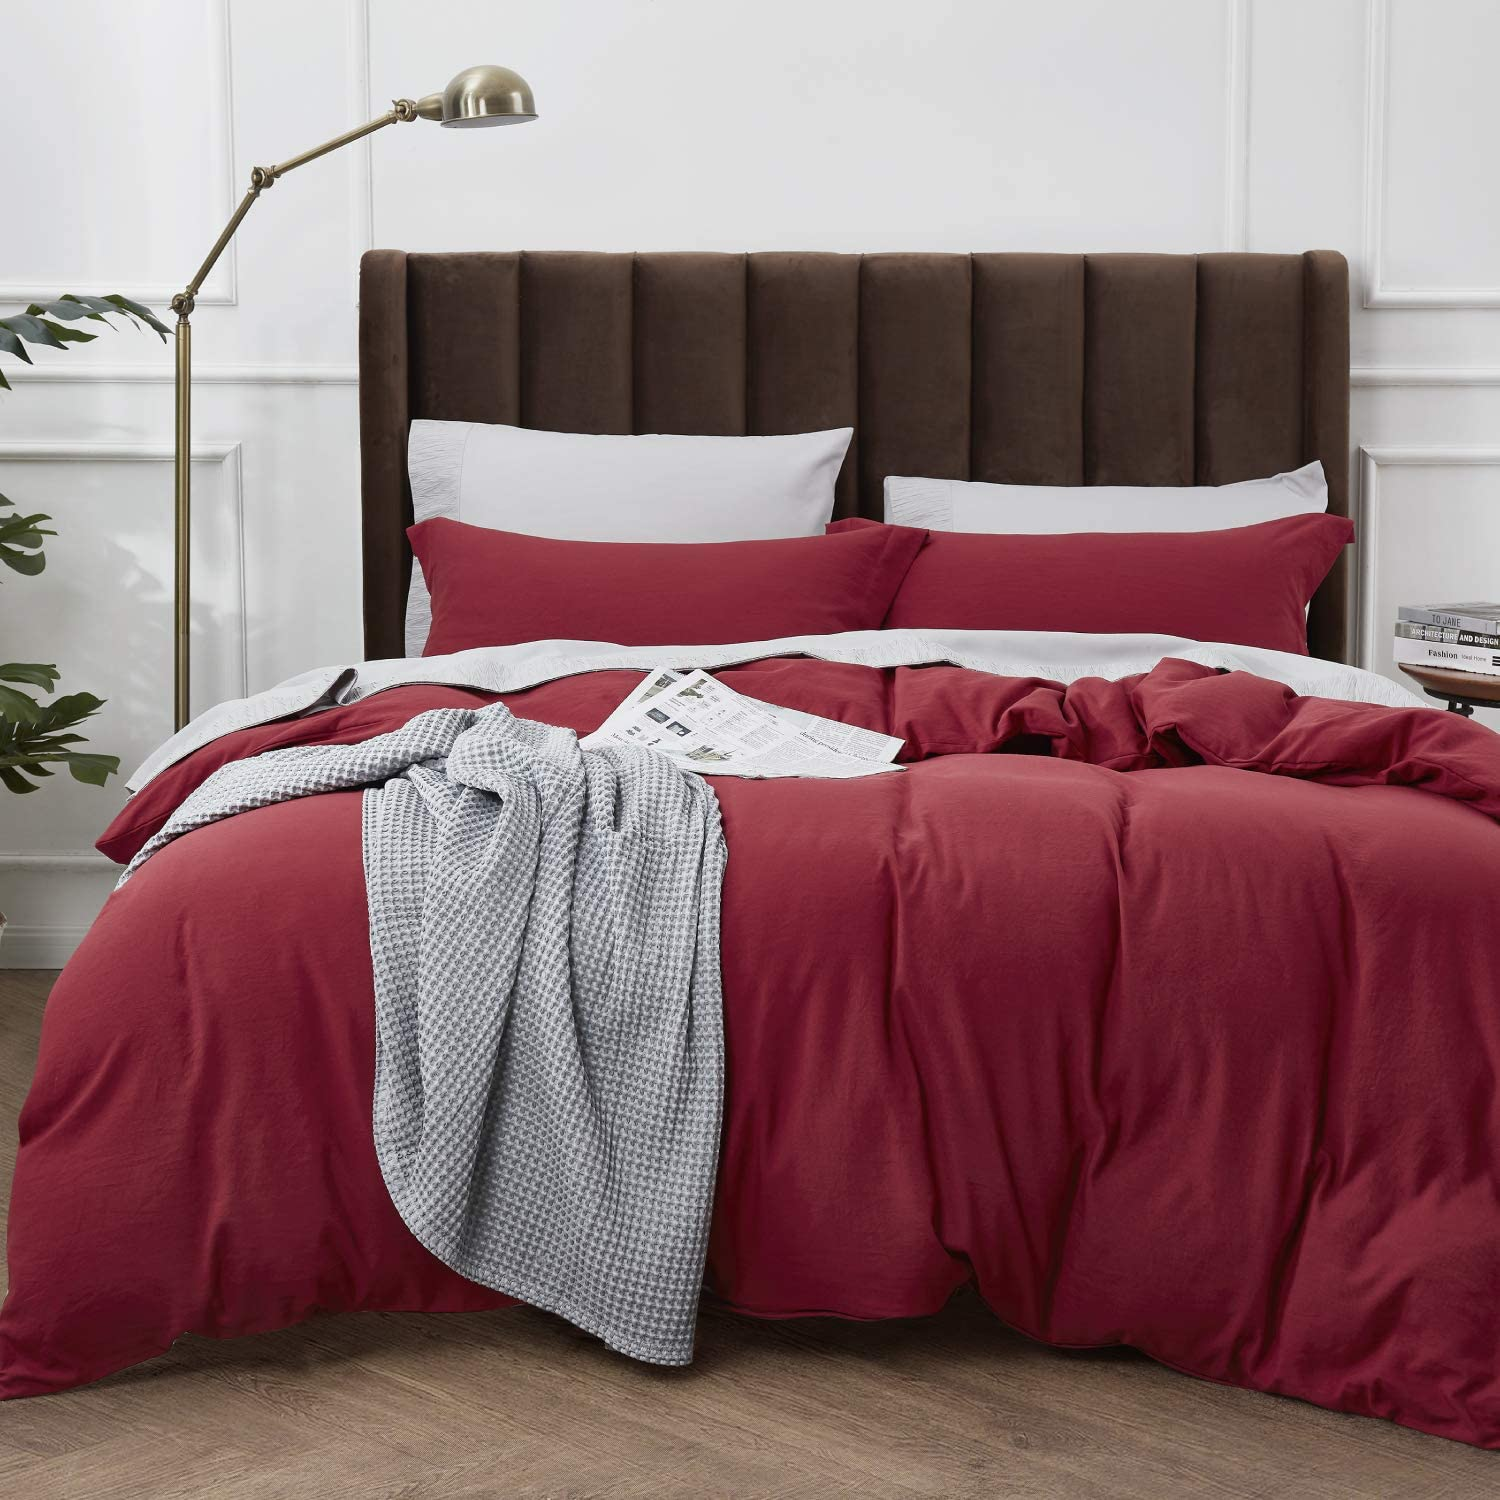 Bedsure Duvet Cover King Size with Zipper Closure, Ultra Soft Hypoallergenic Washed Comforter Cover Sets 3 Pieces Burgundy